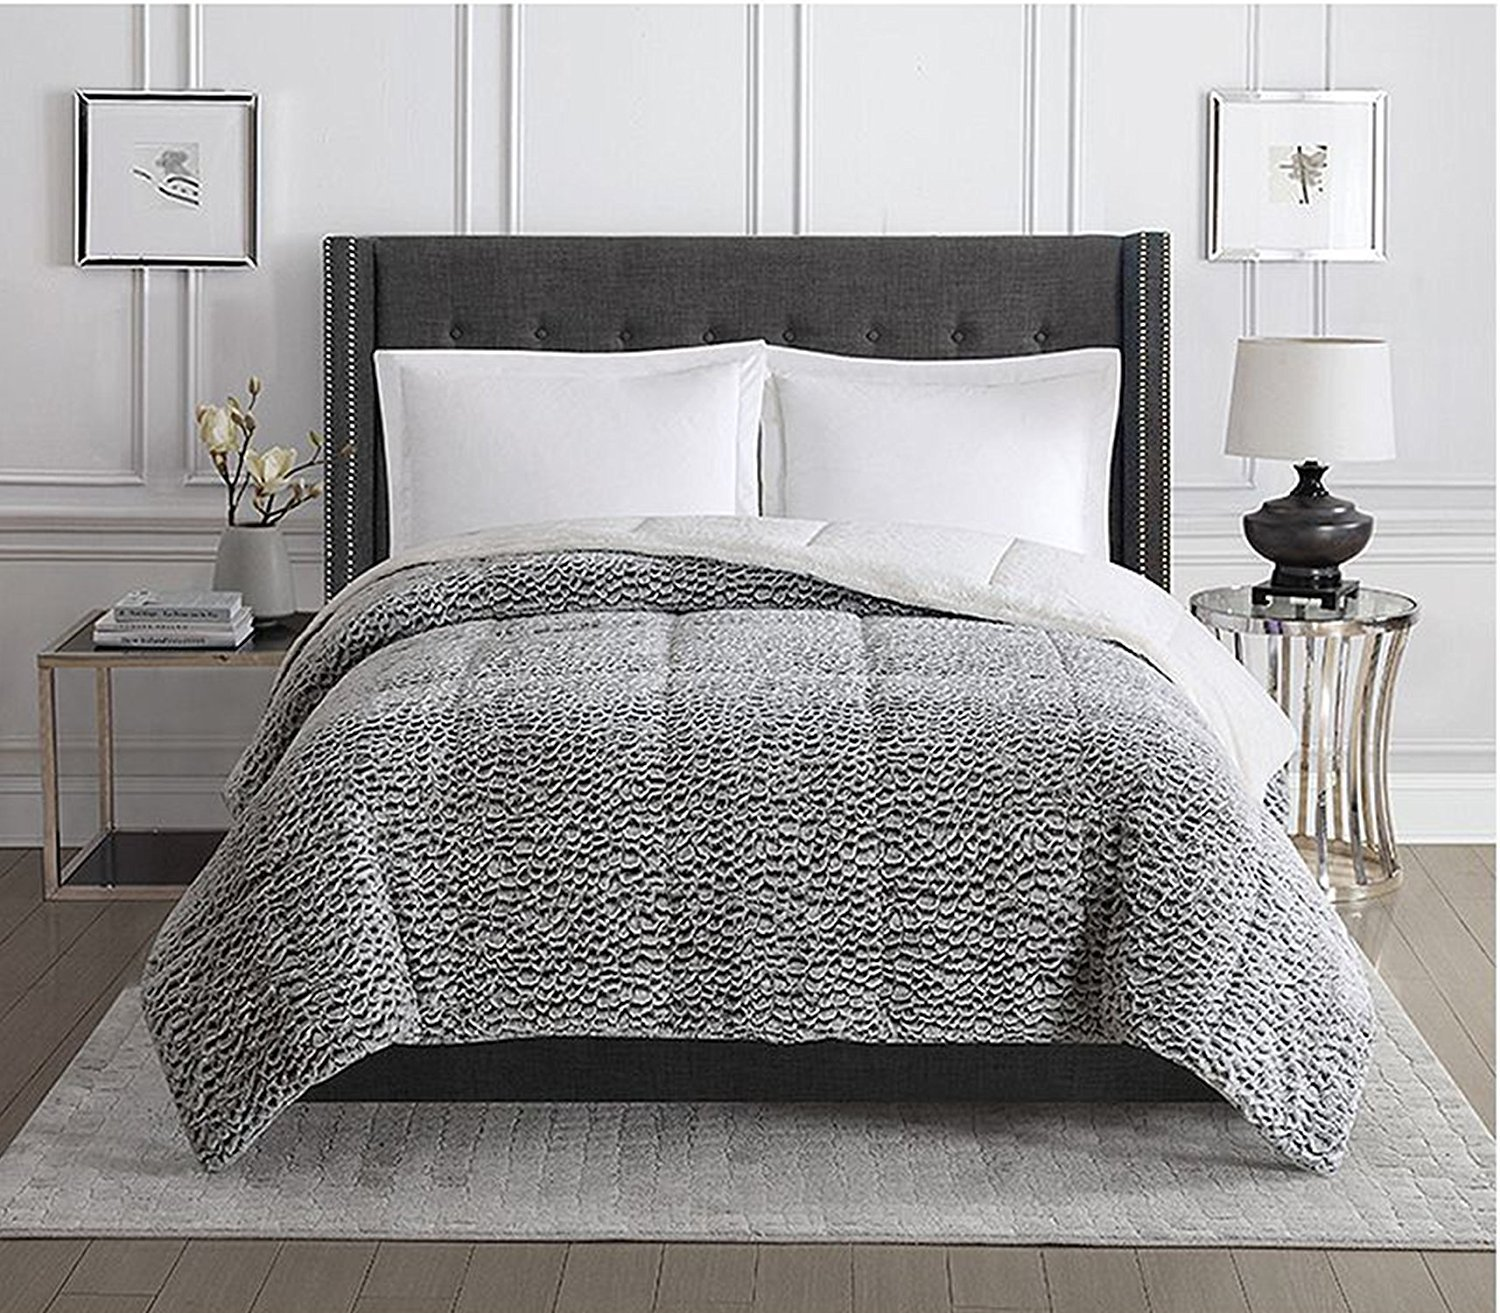 Christian Siriano Faux Fur Comforter (King, Black and White)